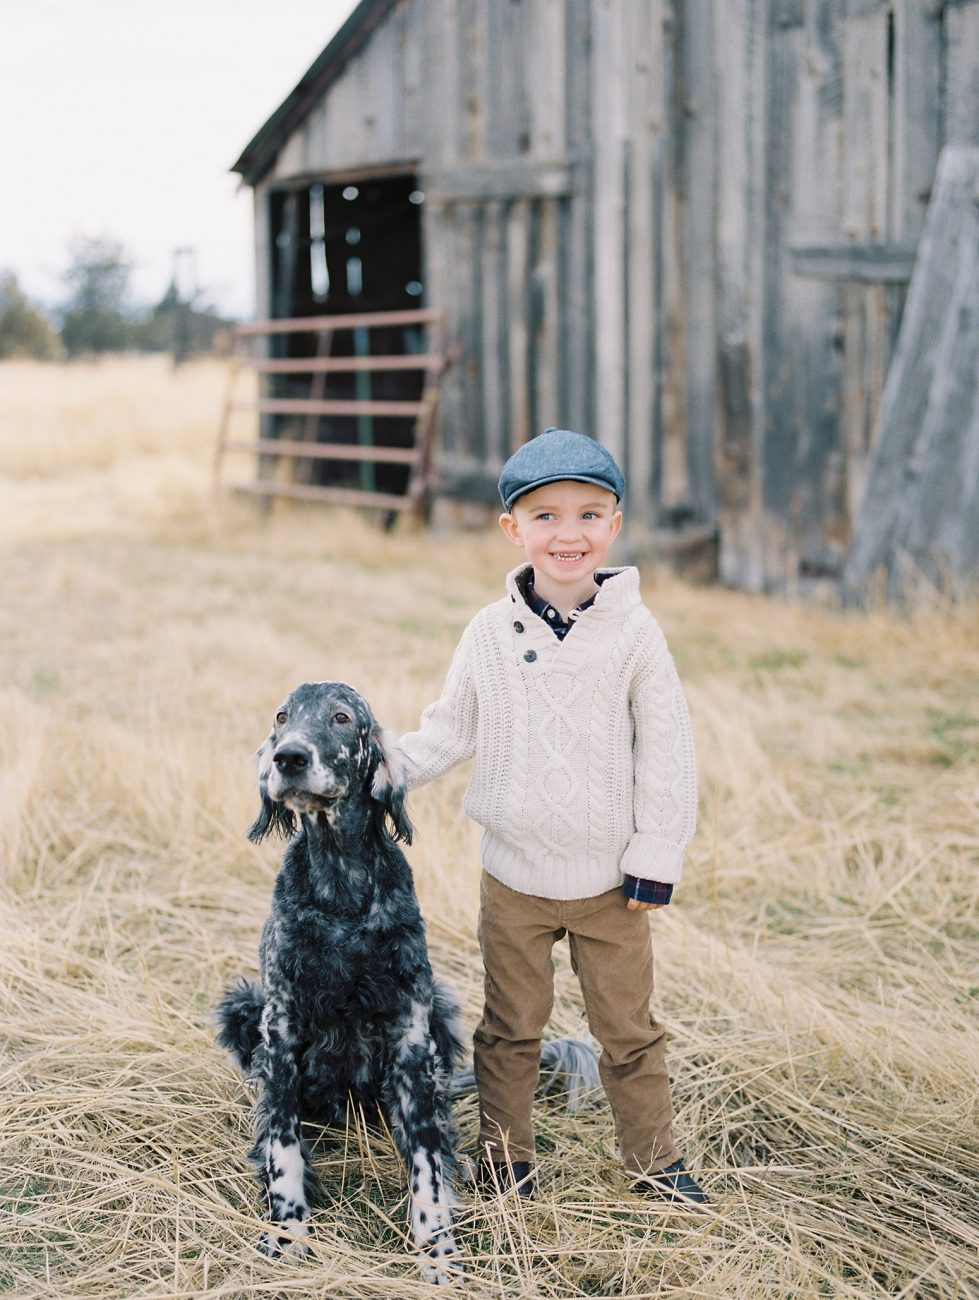 A portrait of a boy and his dog by Marina Koslow